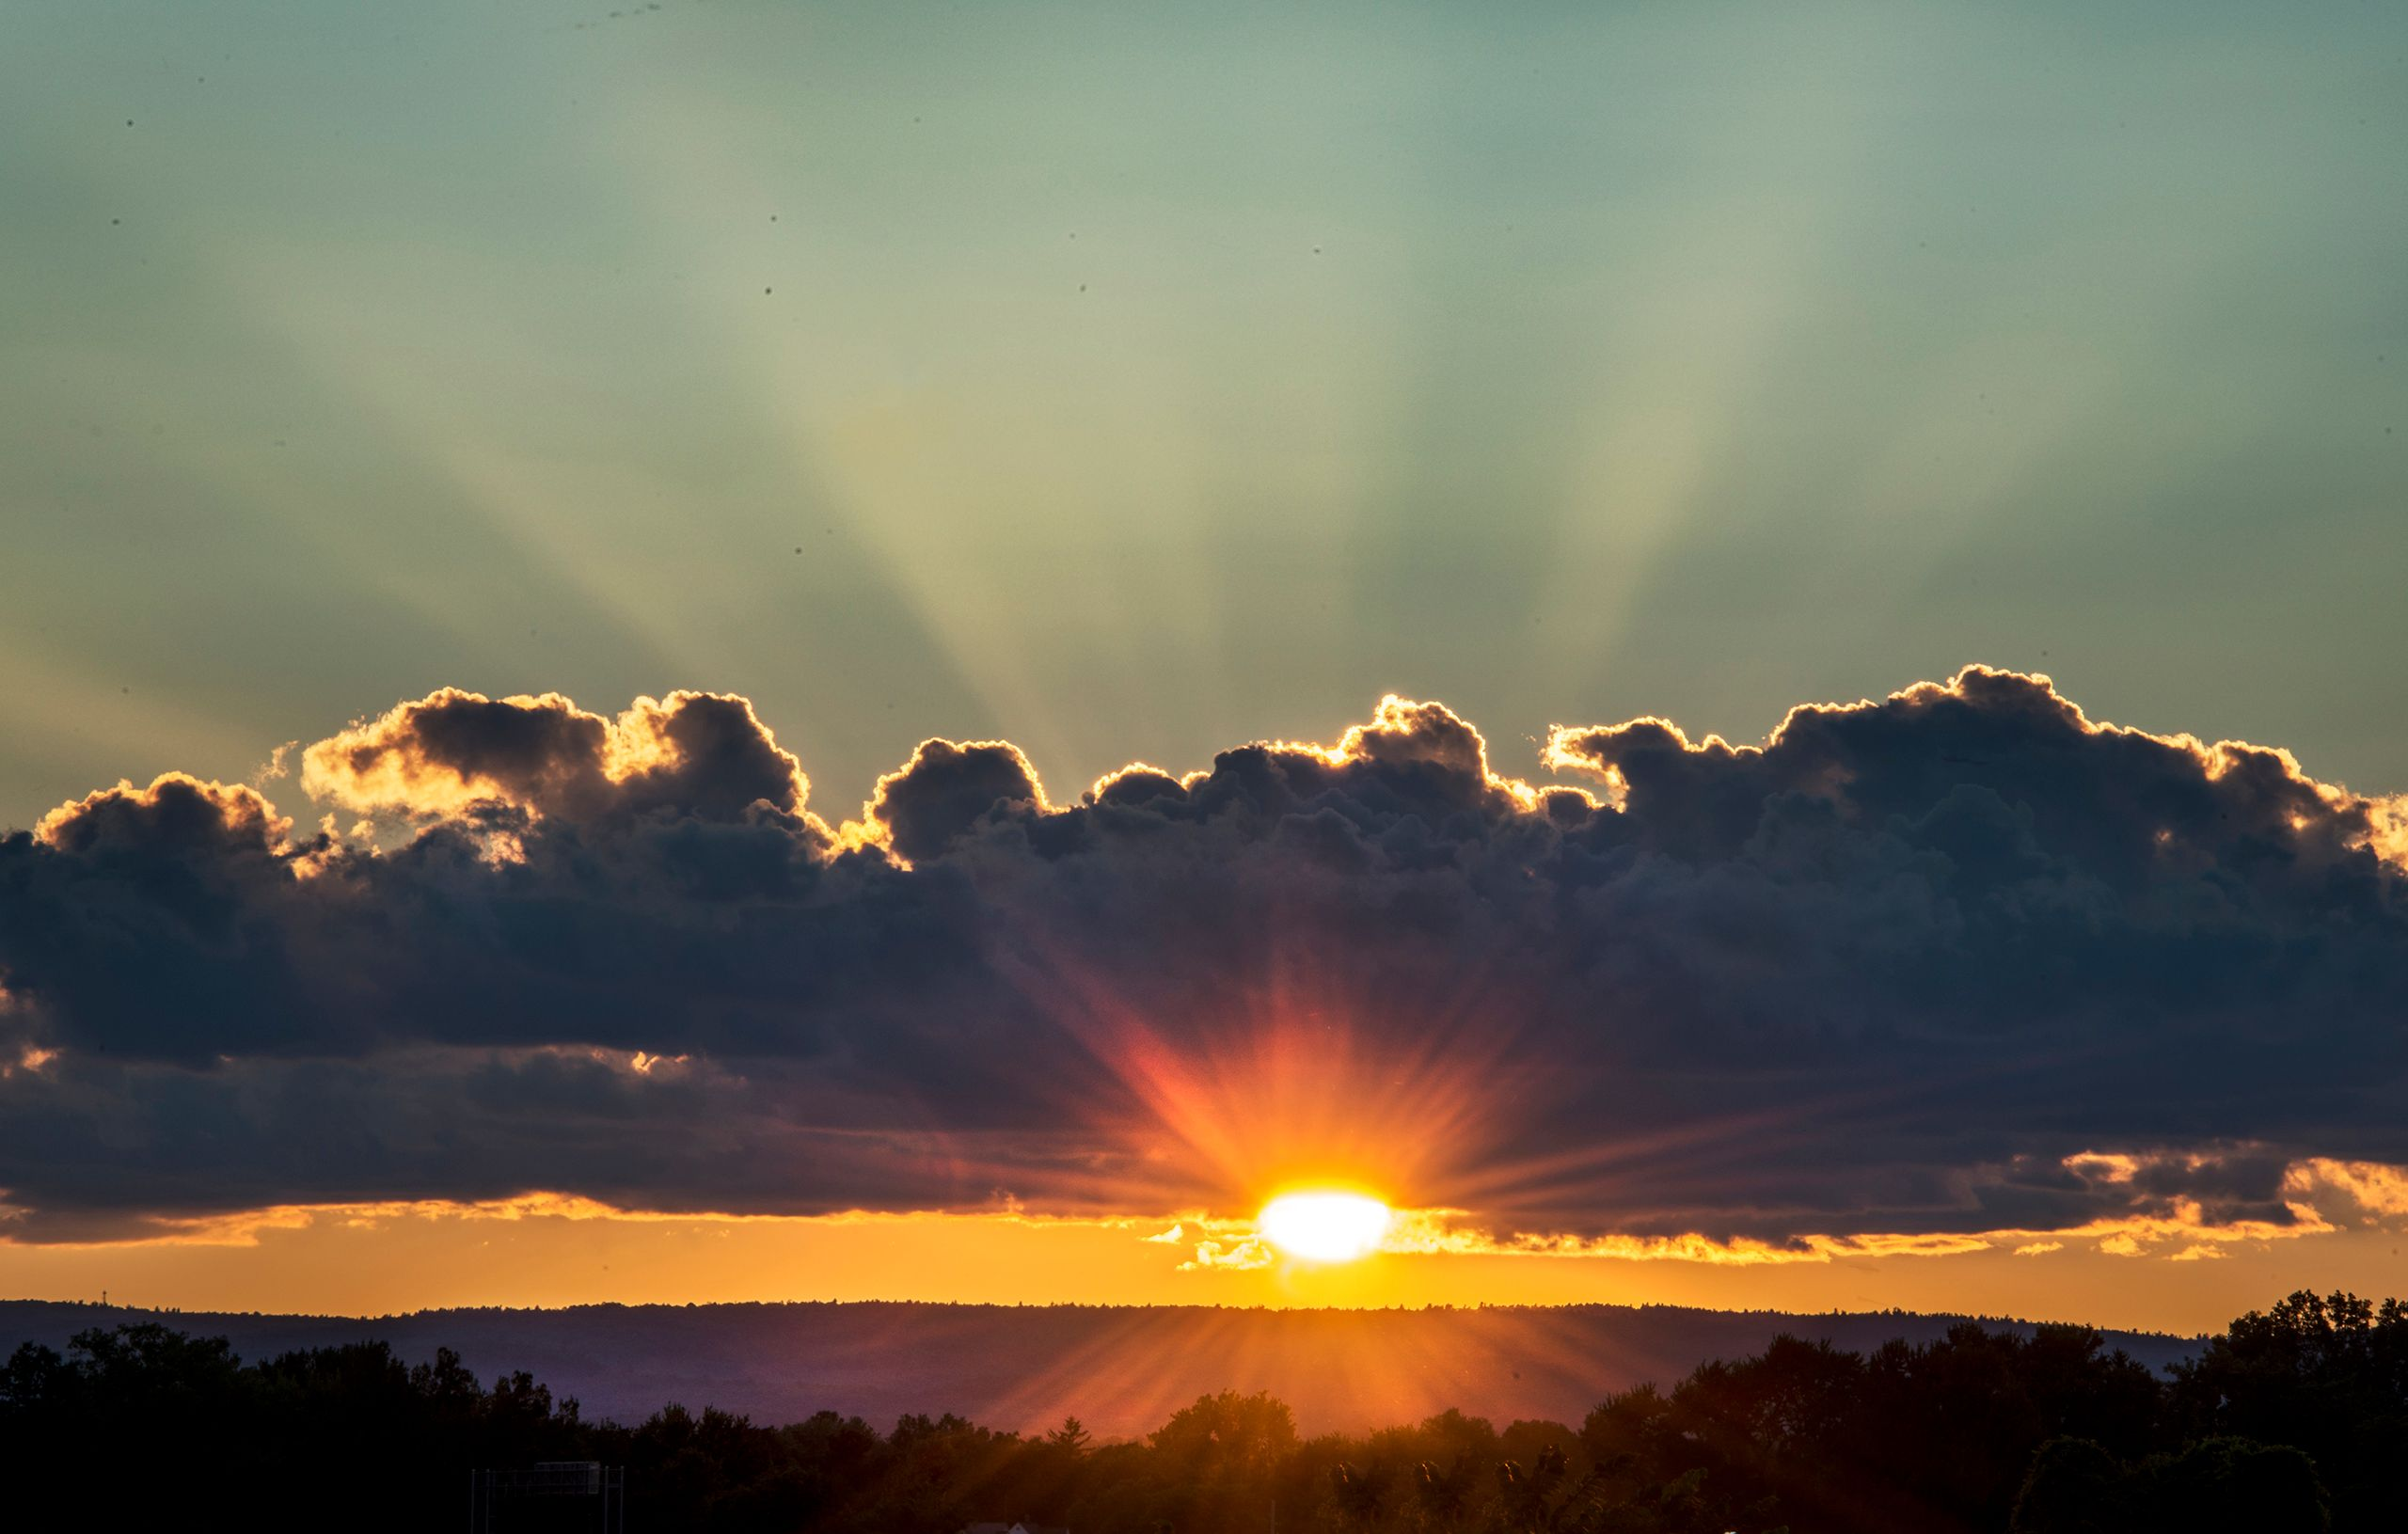 _DSC6803 Radiating Beams at Sunset, Northampton.jpg